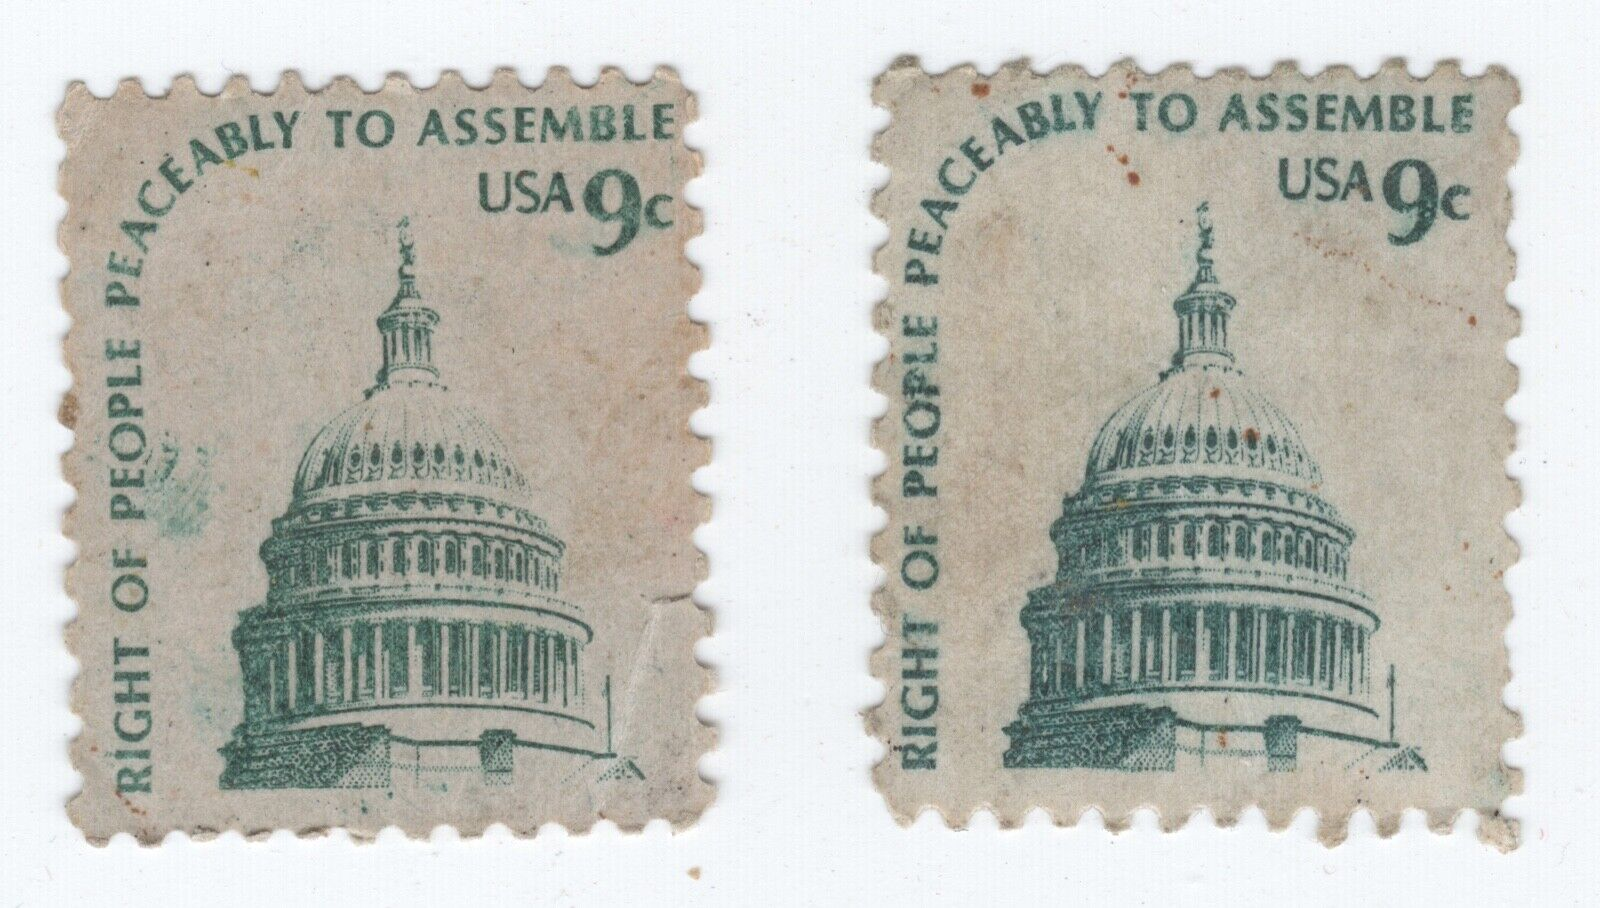 Right Of People Peaceably To Assemble 9 Cent Stamps - 2 Stamps - $0.99